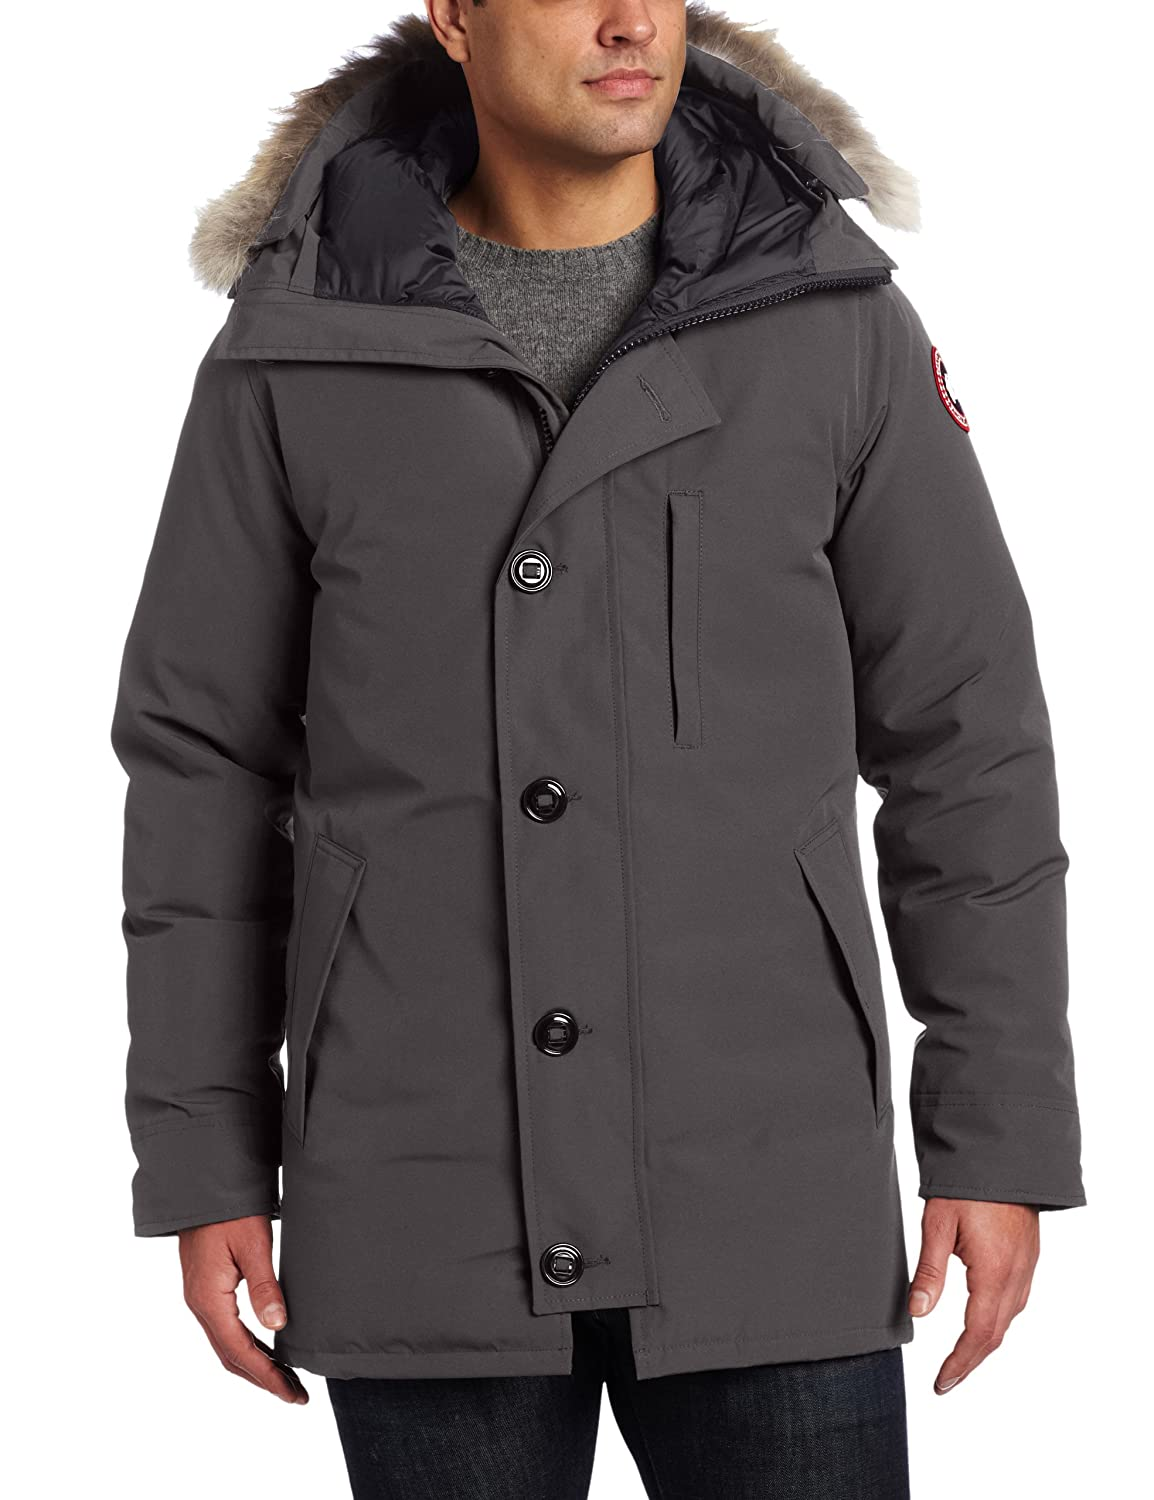 Men S Hybridge Lite Jacket Canada Goose Review